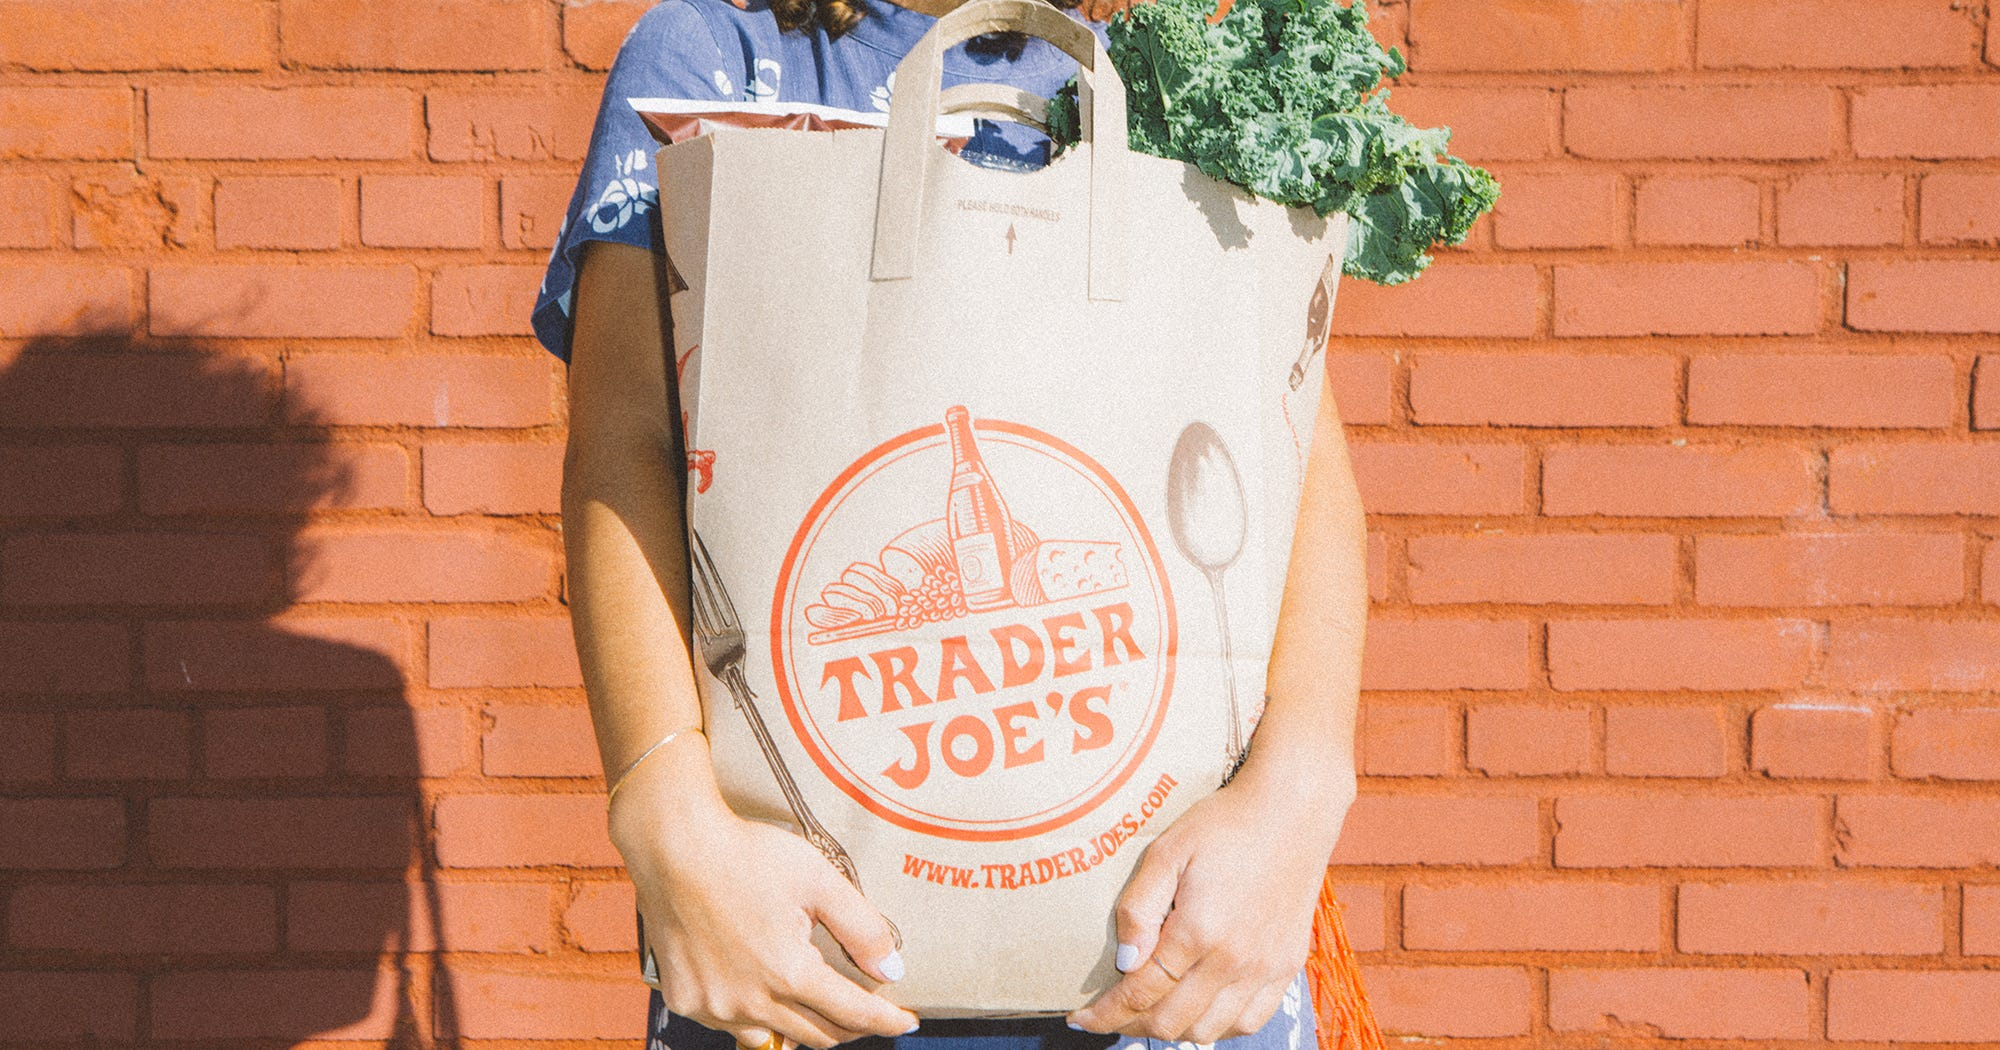 How To Buy A Summer Feast For Under $30 At Trader Joe's